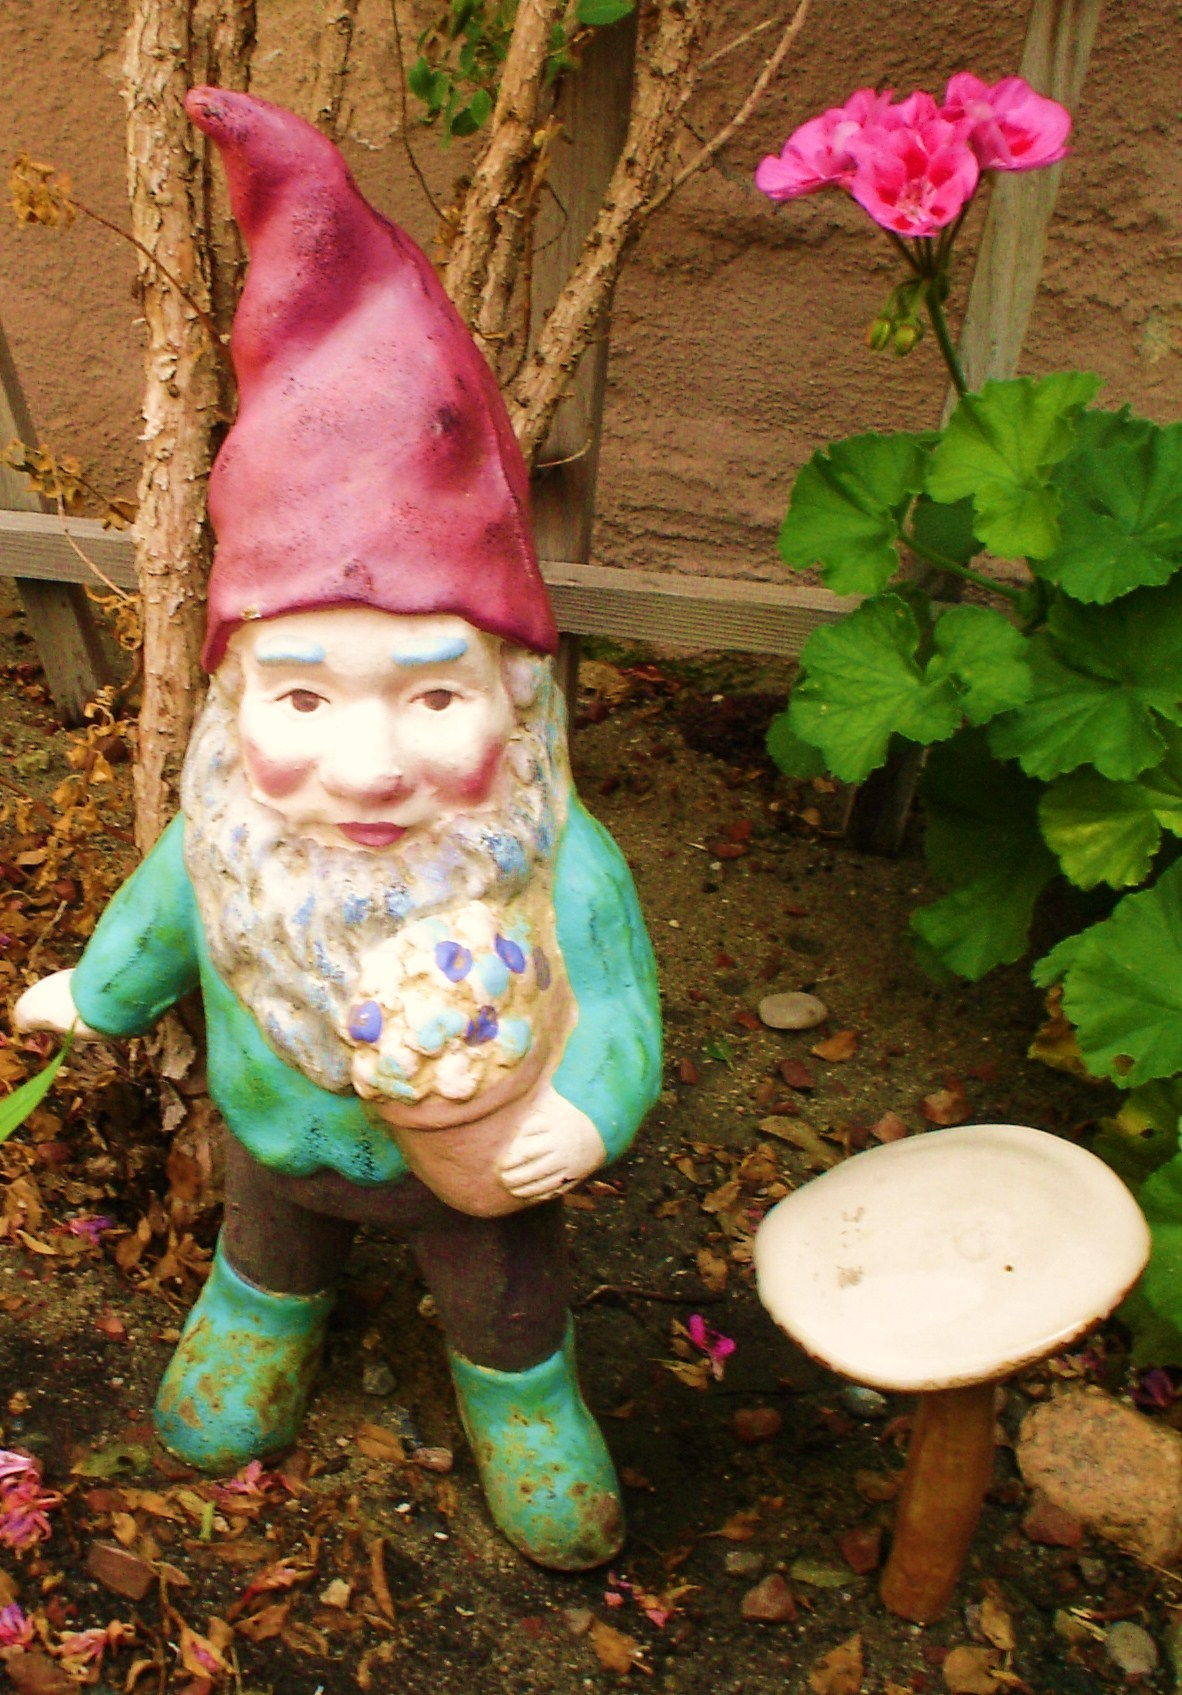 Gnomes images gnomes in the garden HD wallpaper and background ...